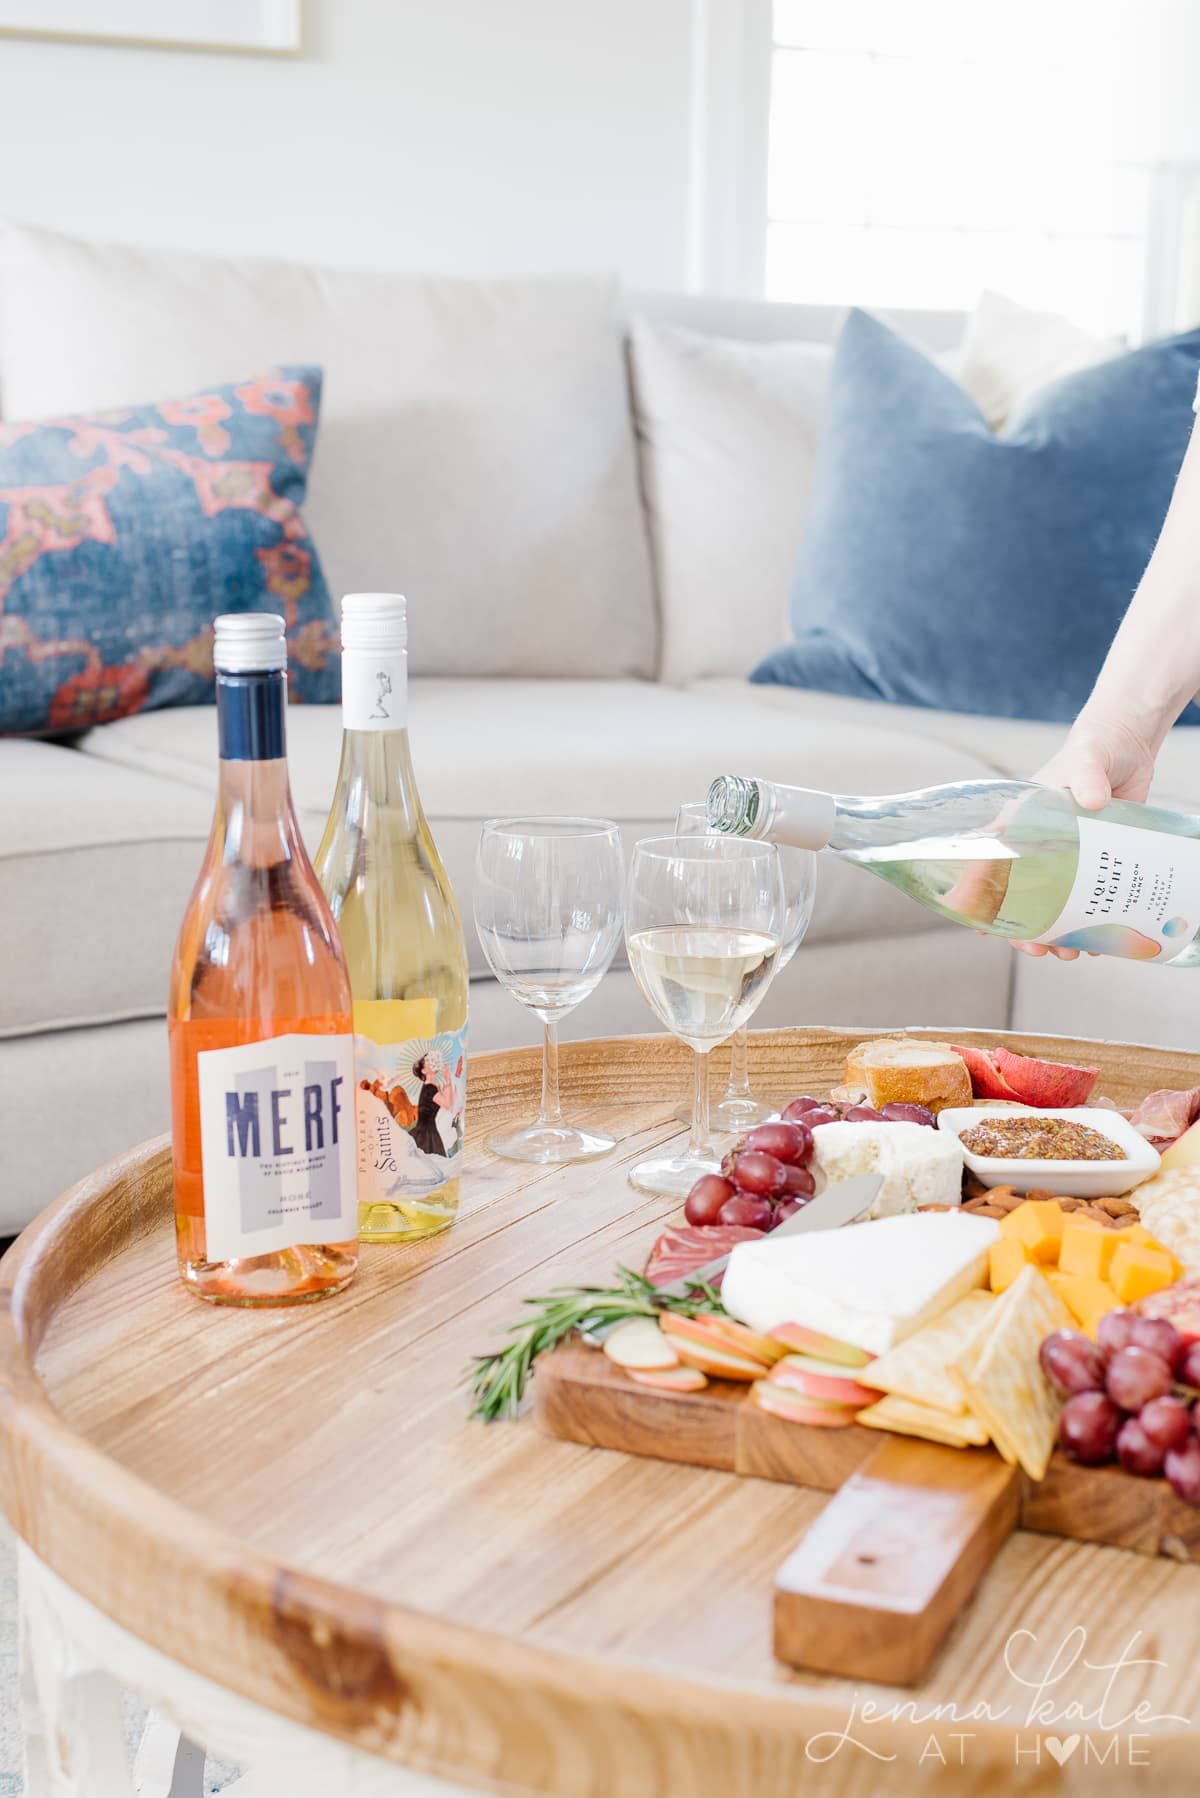 Wine tasting party with different wines and a cheese and meat charcuterie board